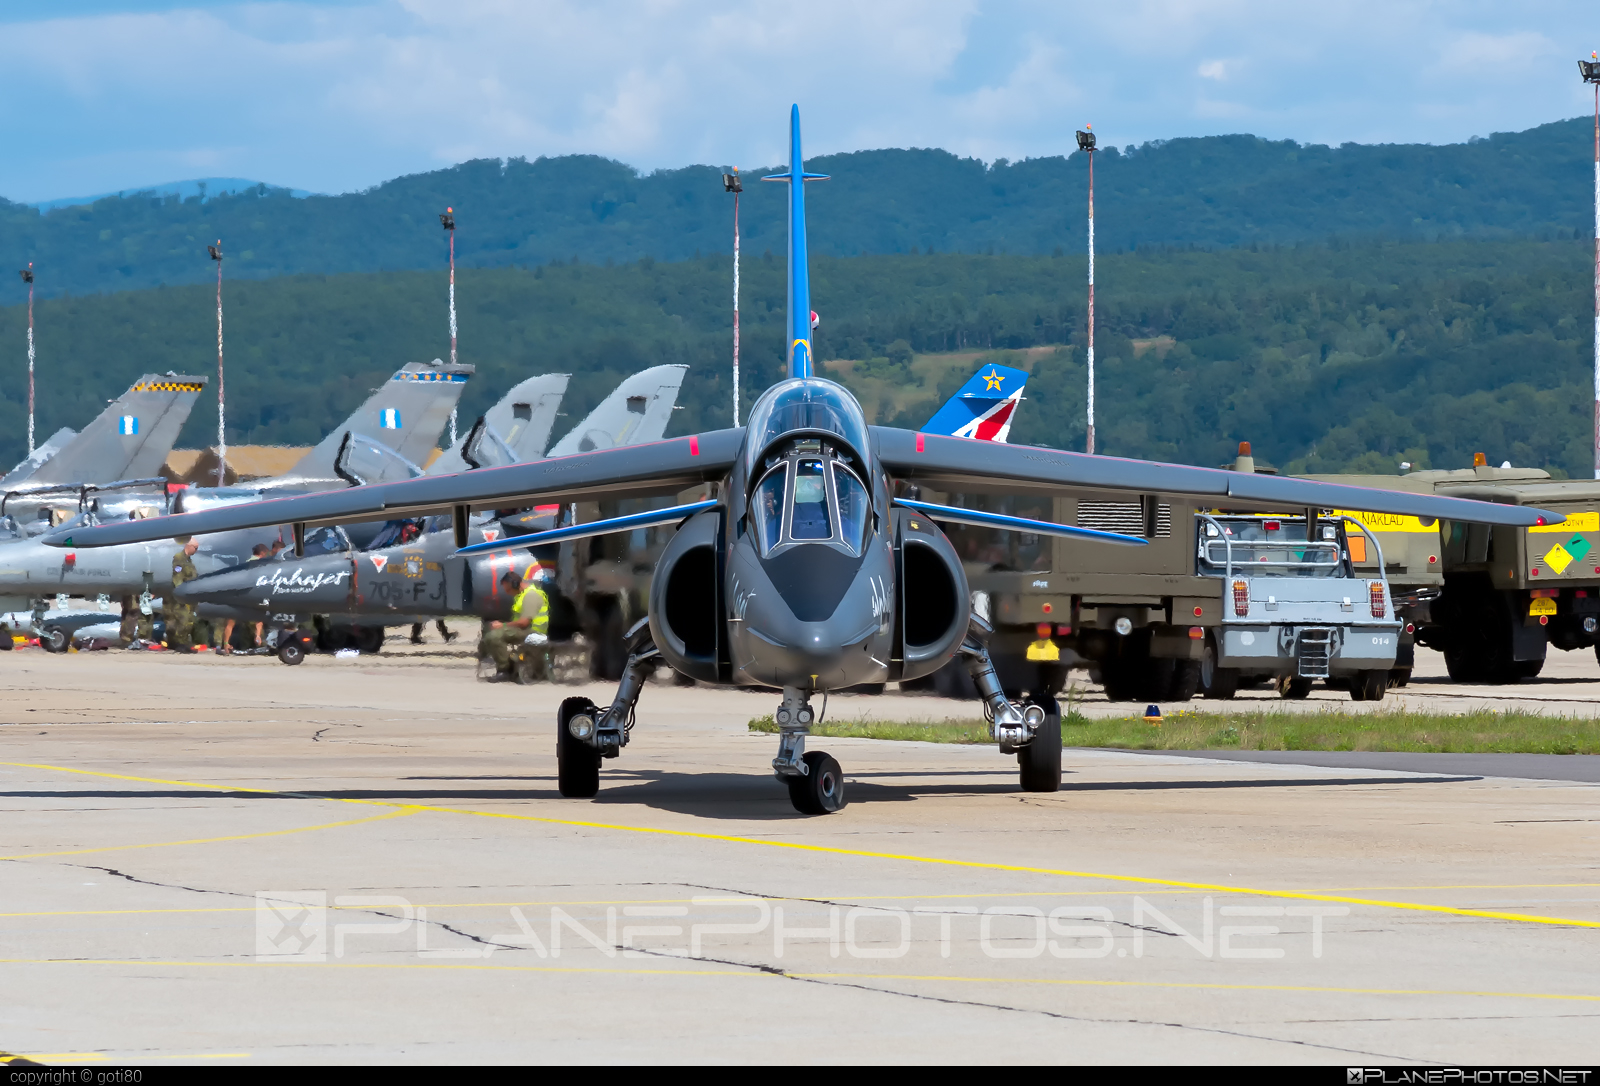 Dassault-Dornier Alpha Jet E - E114 operated by Armée de l´Air (French Air Force) #alphajet #alphajete #armeedelair #dassaultdornier #frenchairforce #siaf2019